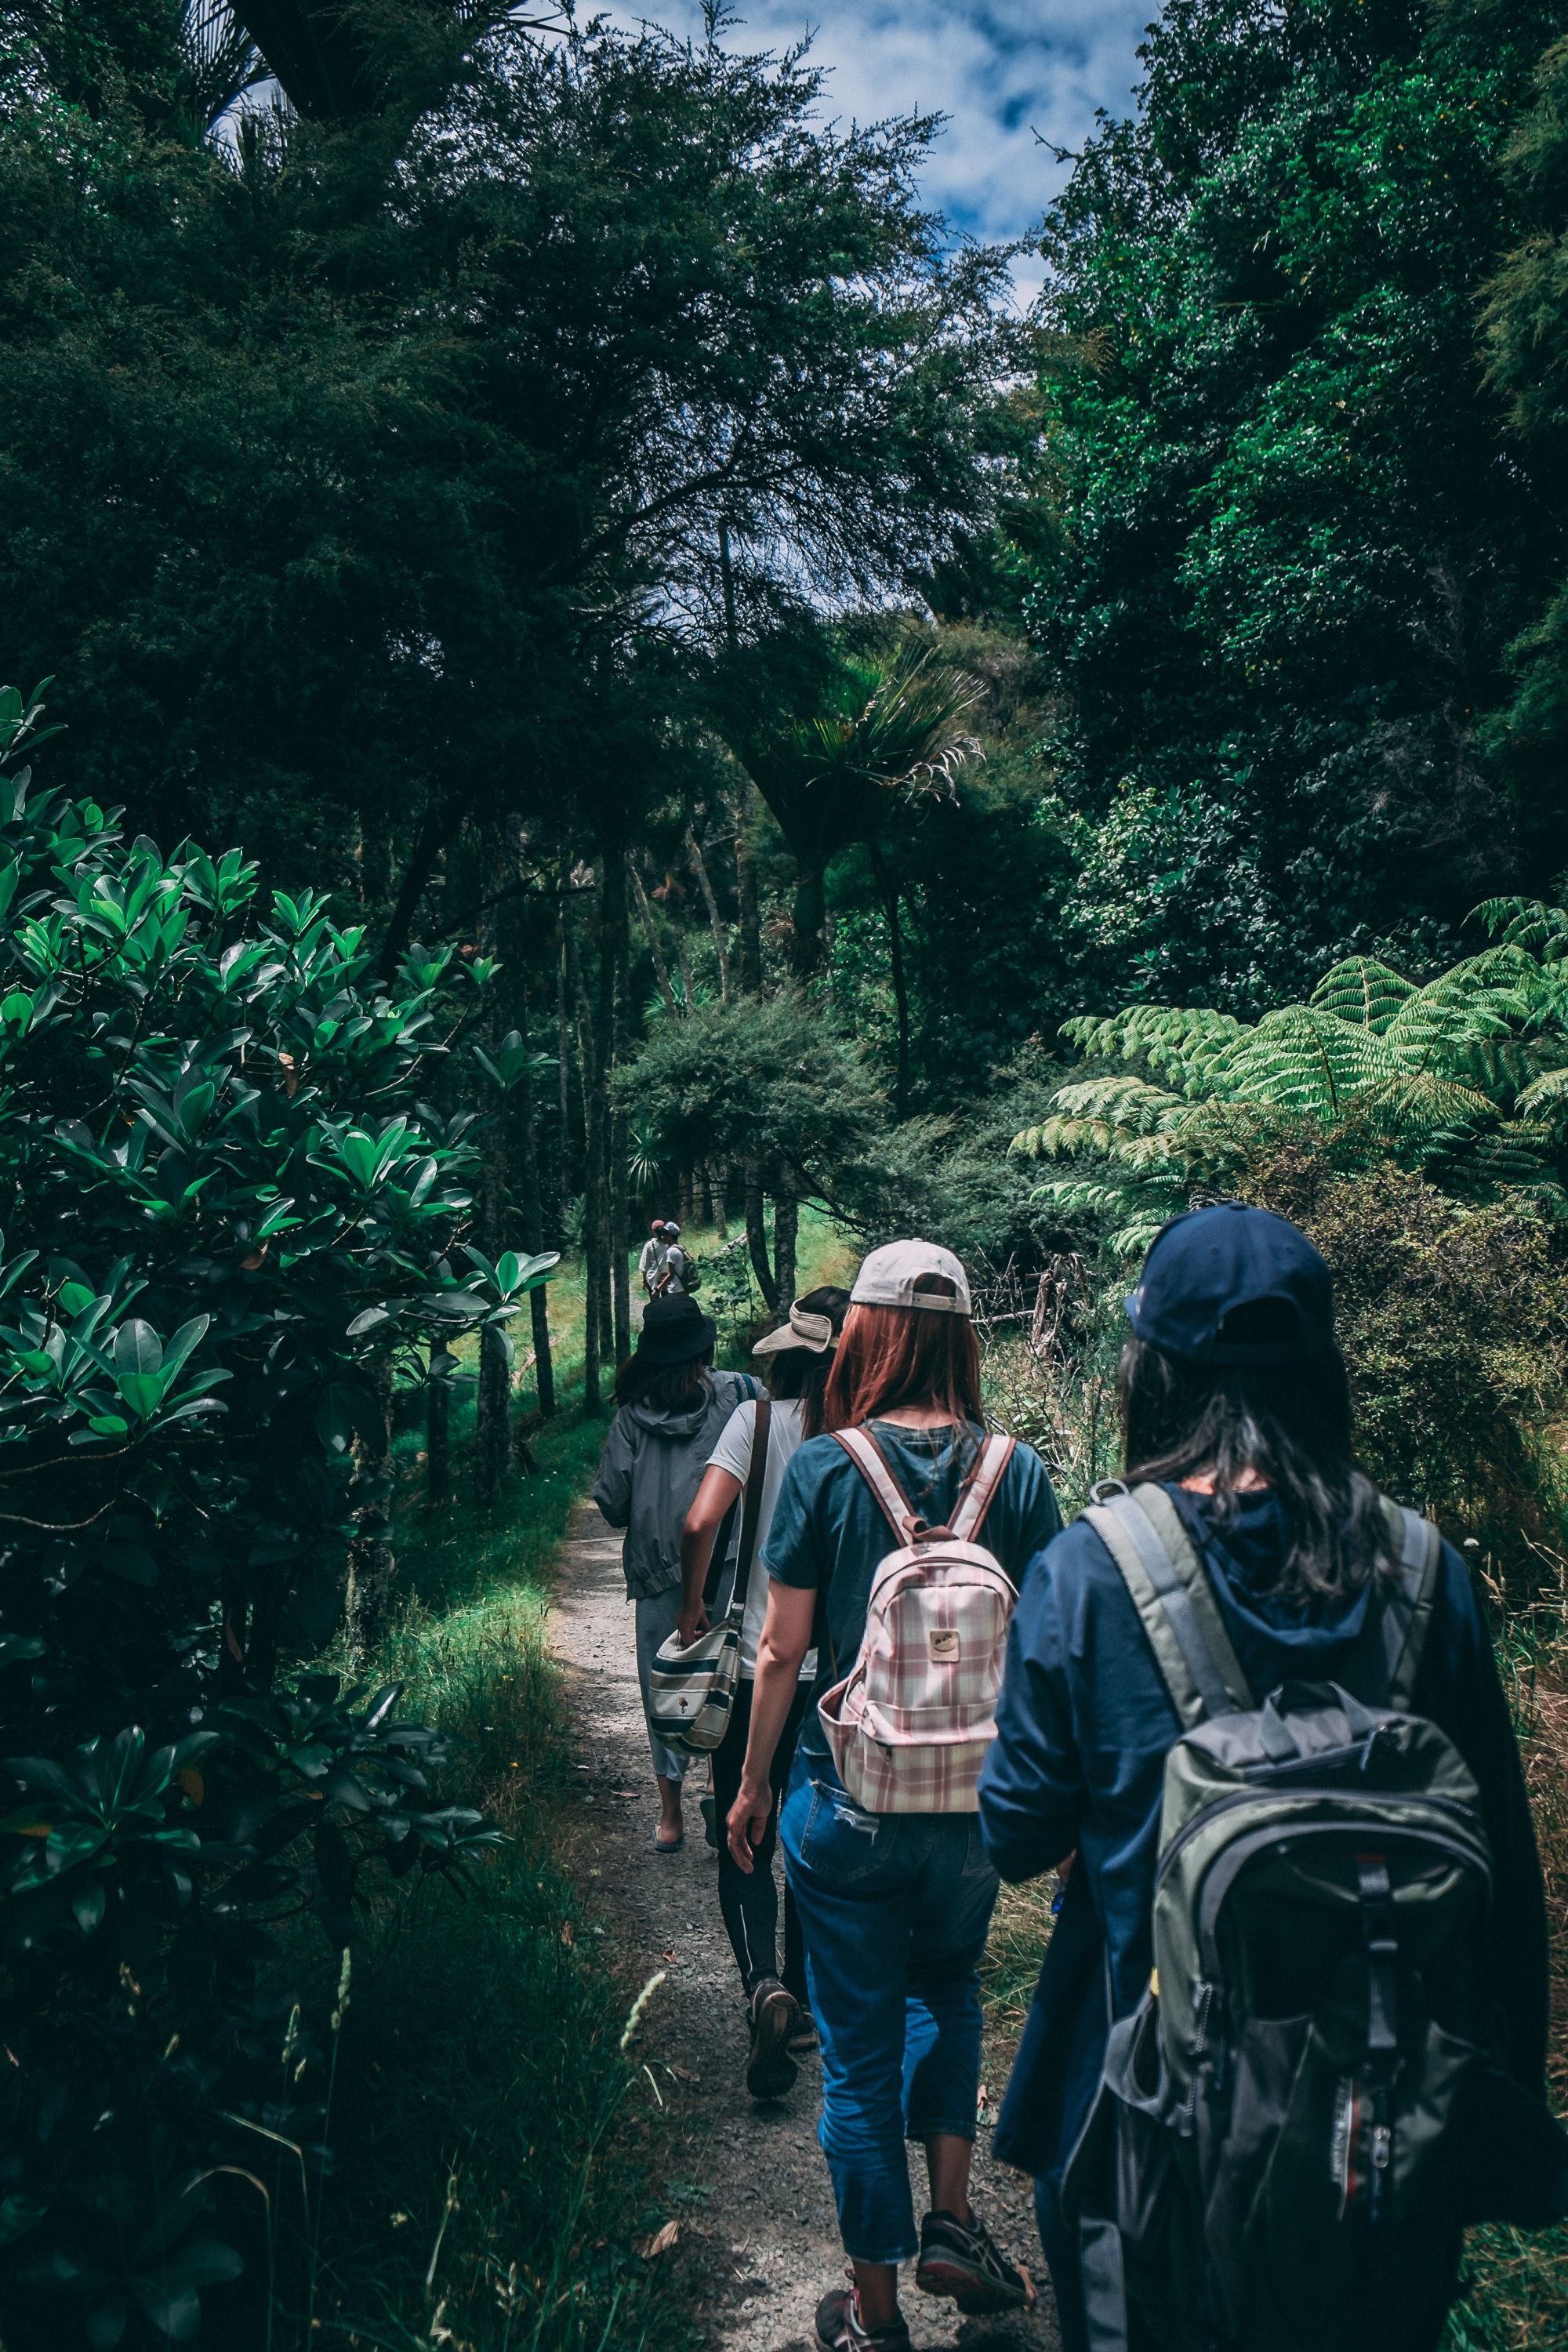 People Wearing Backpacks Walking on Pathway Near Green Leaf Plants, Adult, Trail, People, Rainforest, HQ Photo